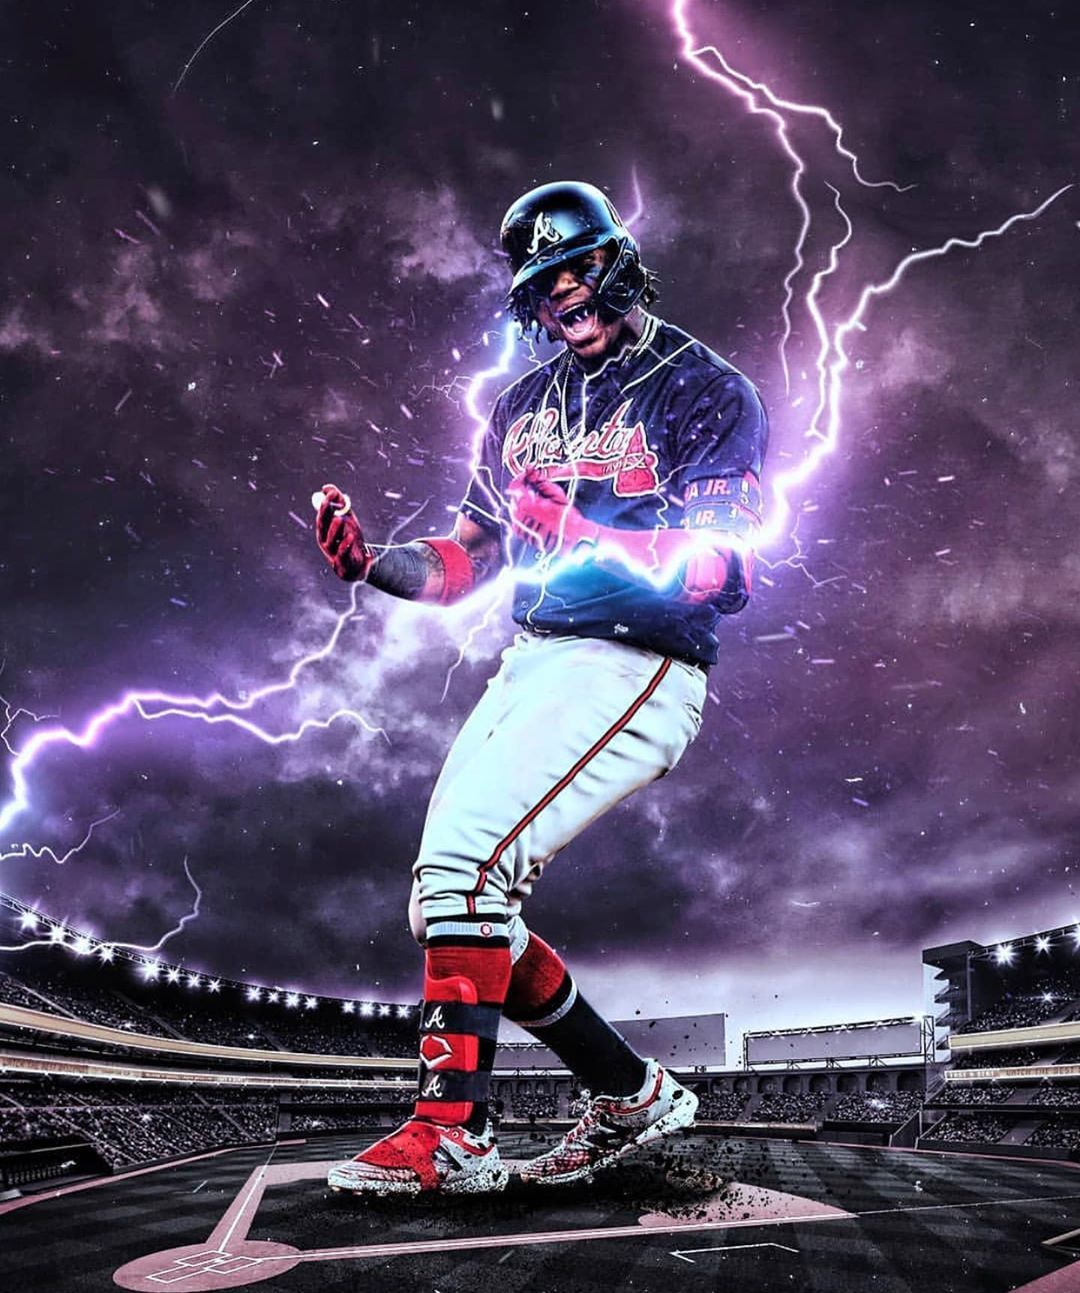 89 7k Likes 1 117 Comments El Abusador Ronaldacuna13 On Instagram Thank You For Atlanta Braves Wallpaper Atlanta Braves Baseball Mlb Baseball Teams